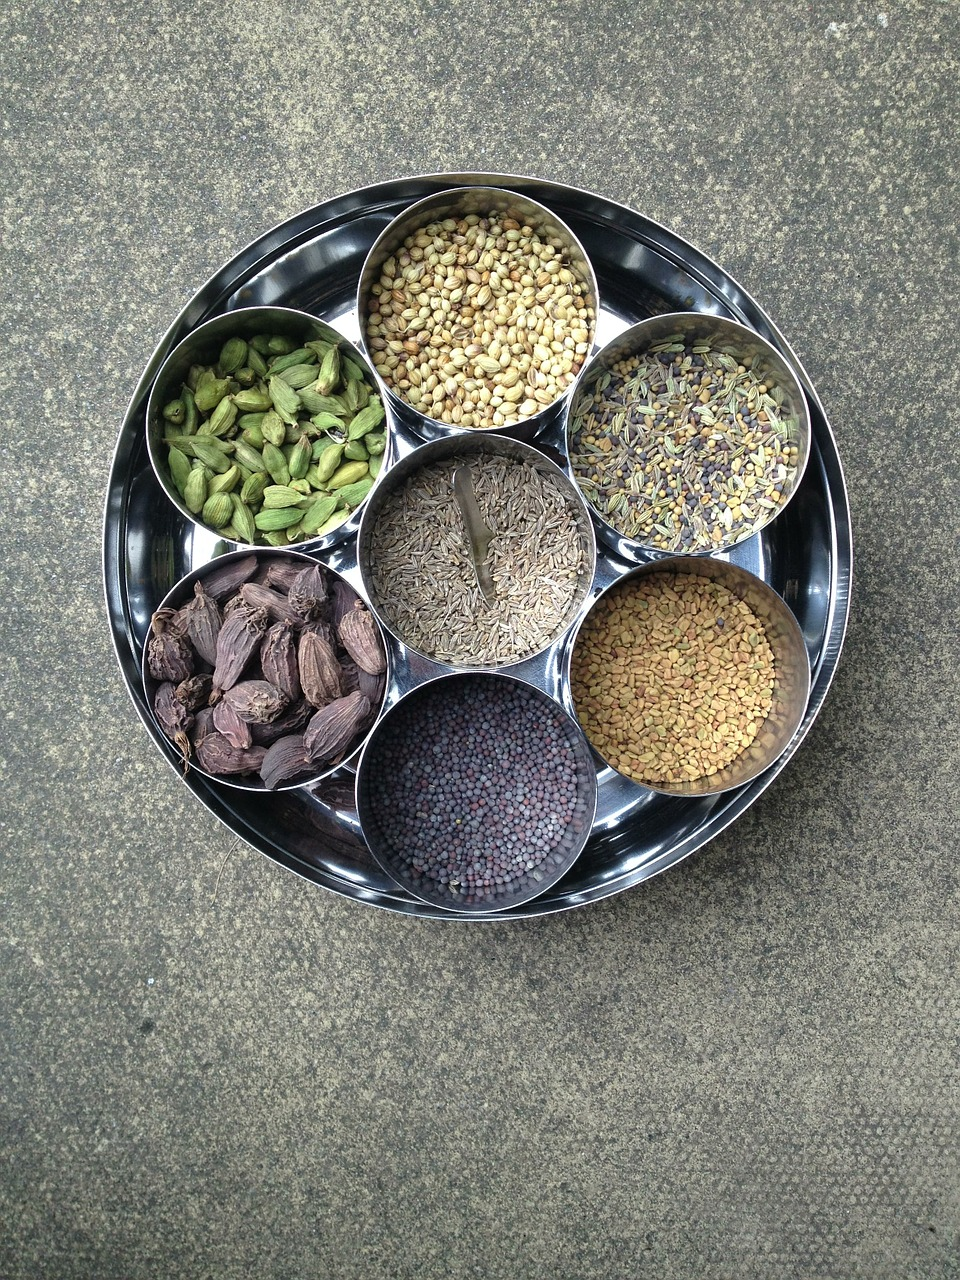 spices-450770_1280